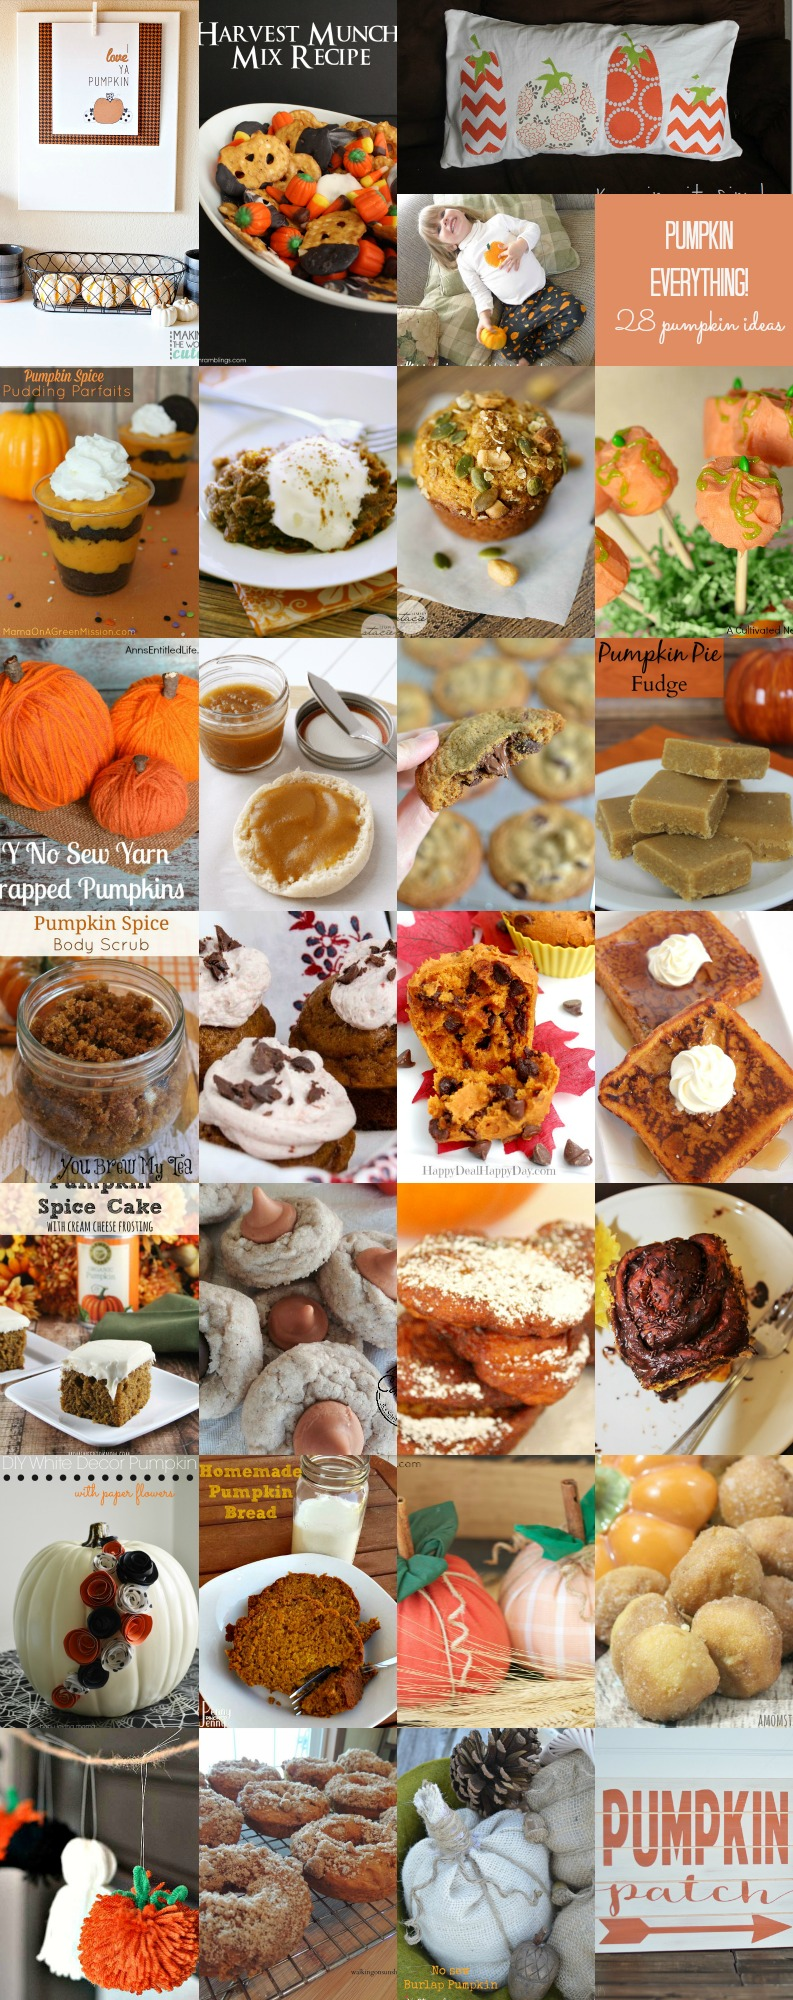 Pumpkin Everything! 28 Pumpkin Ideas, crafts and recipes